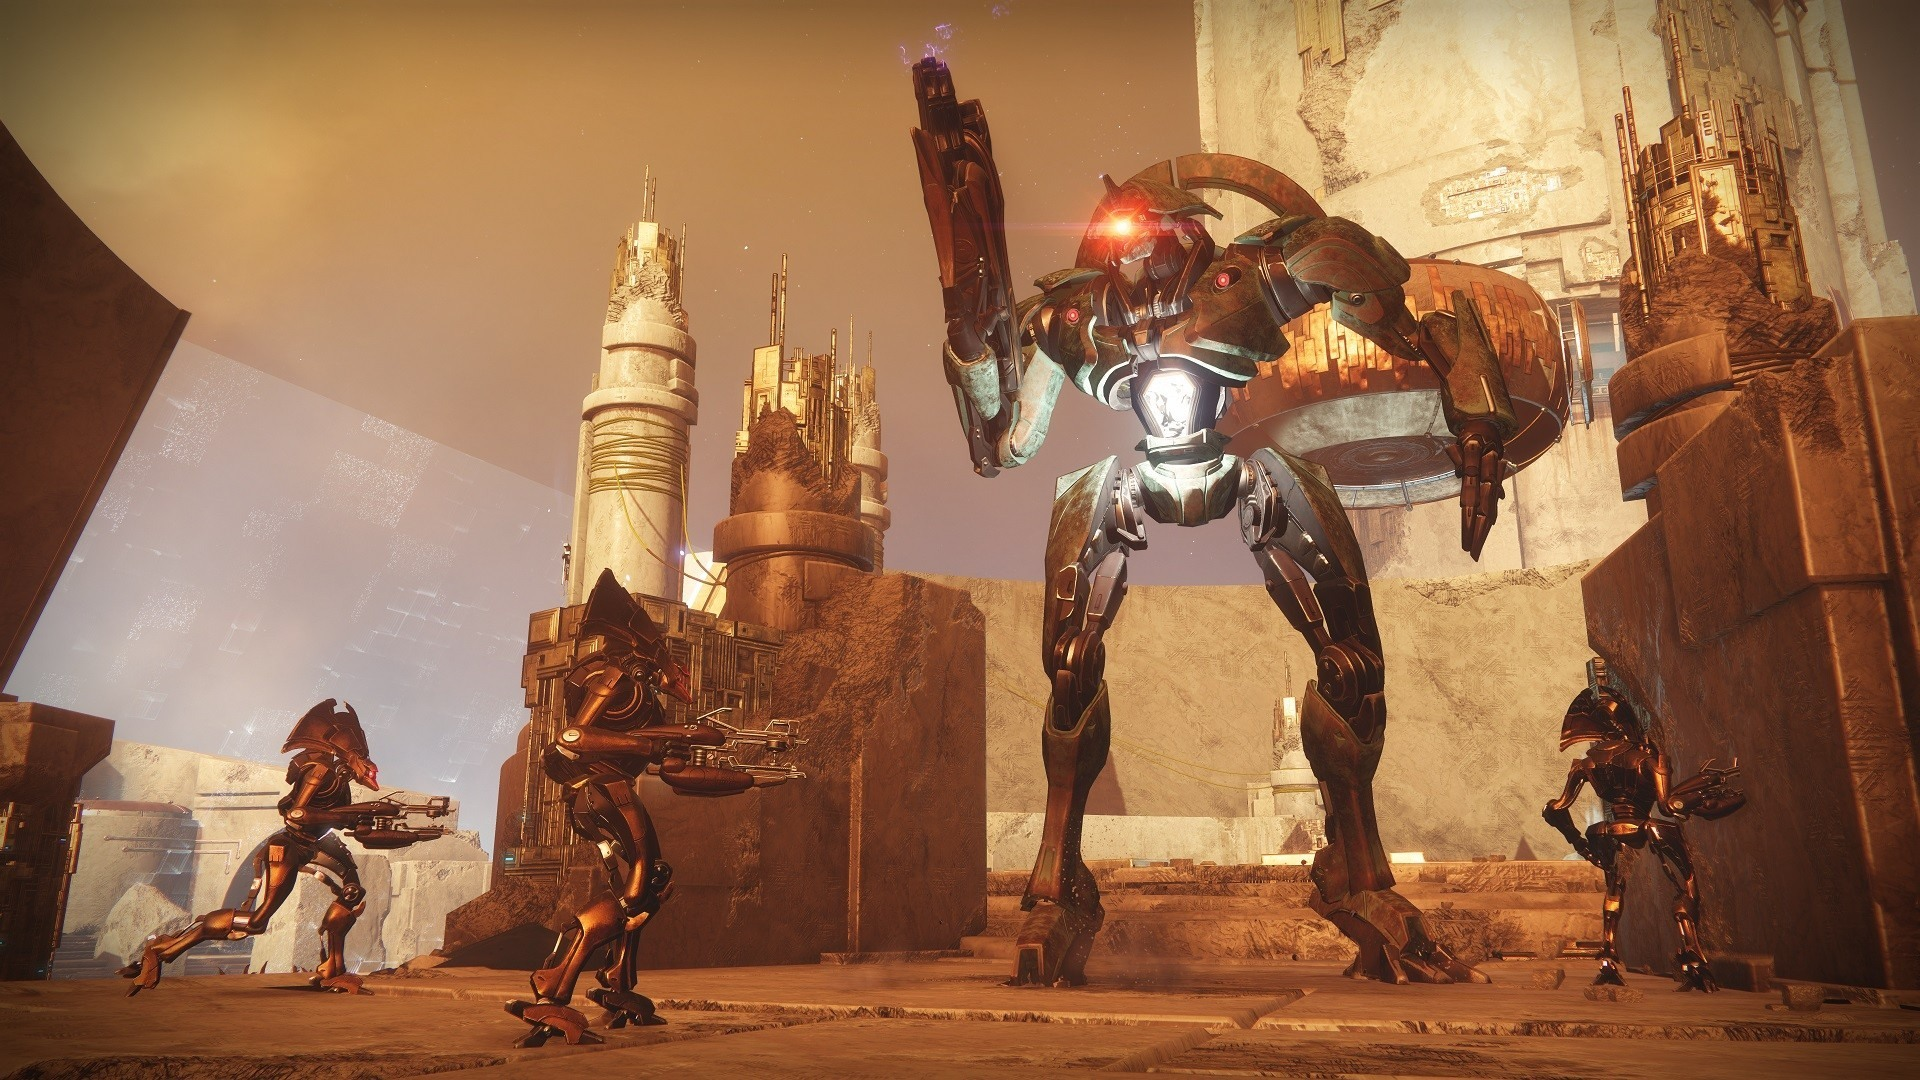 Destiny 2 Vex Crossroads Guide Defeat The Gate Lord And Trigger